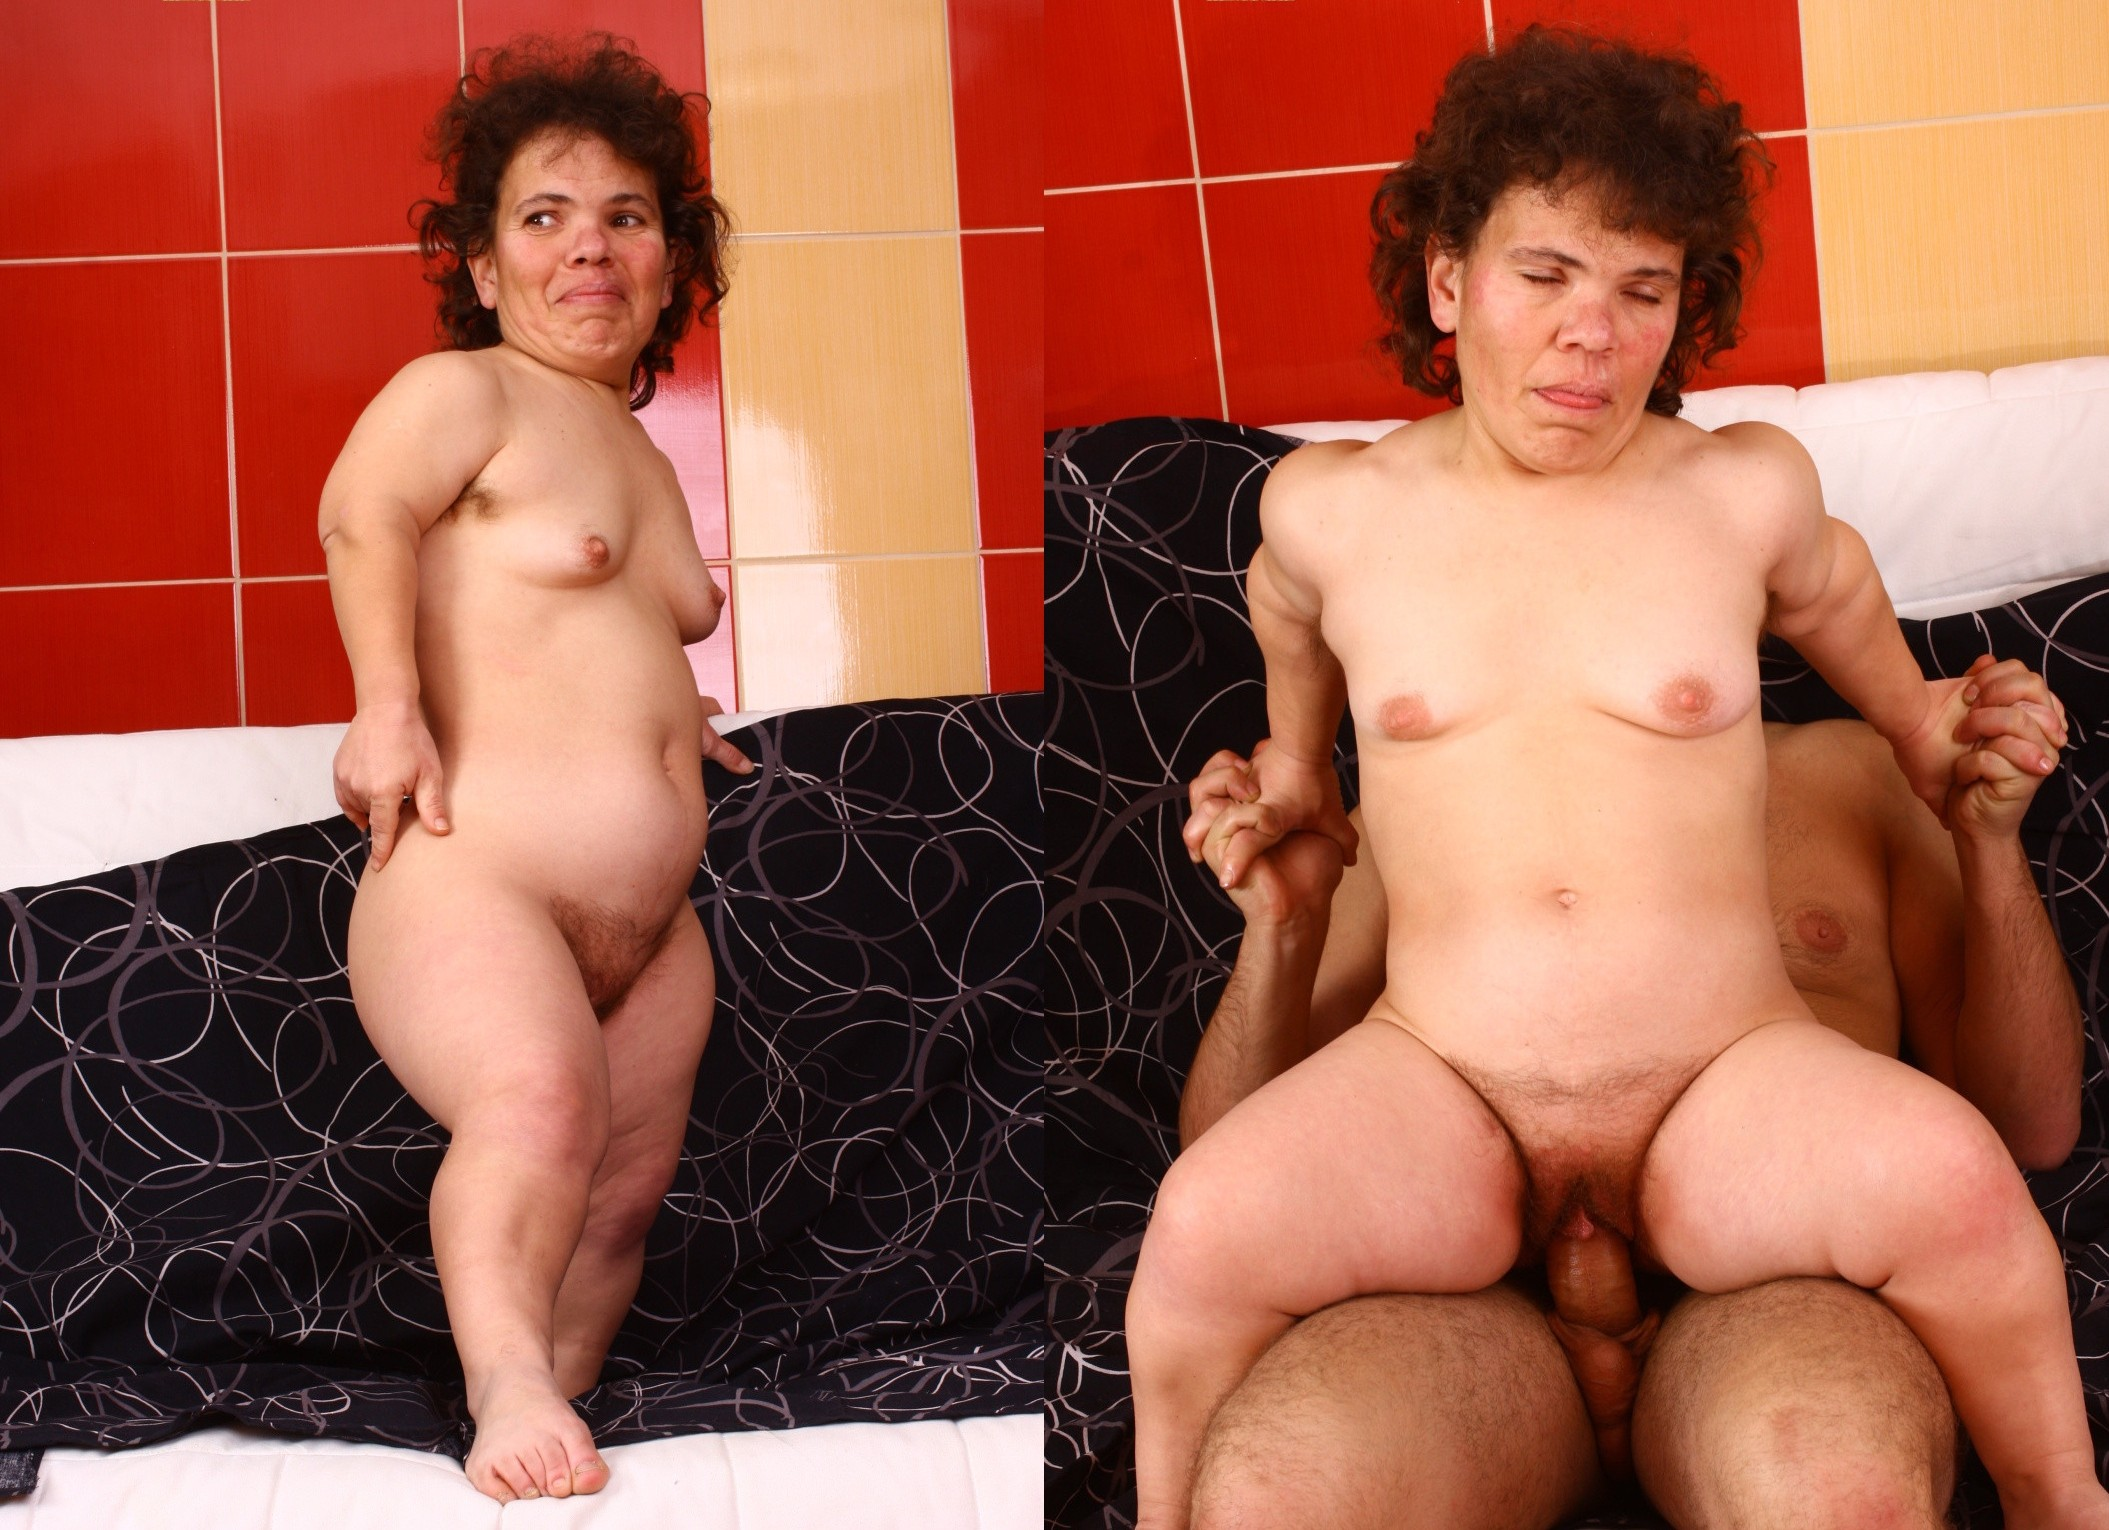 Very hot fit girls nude